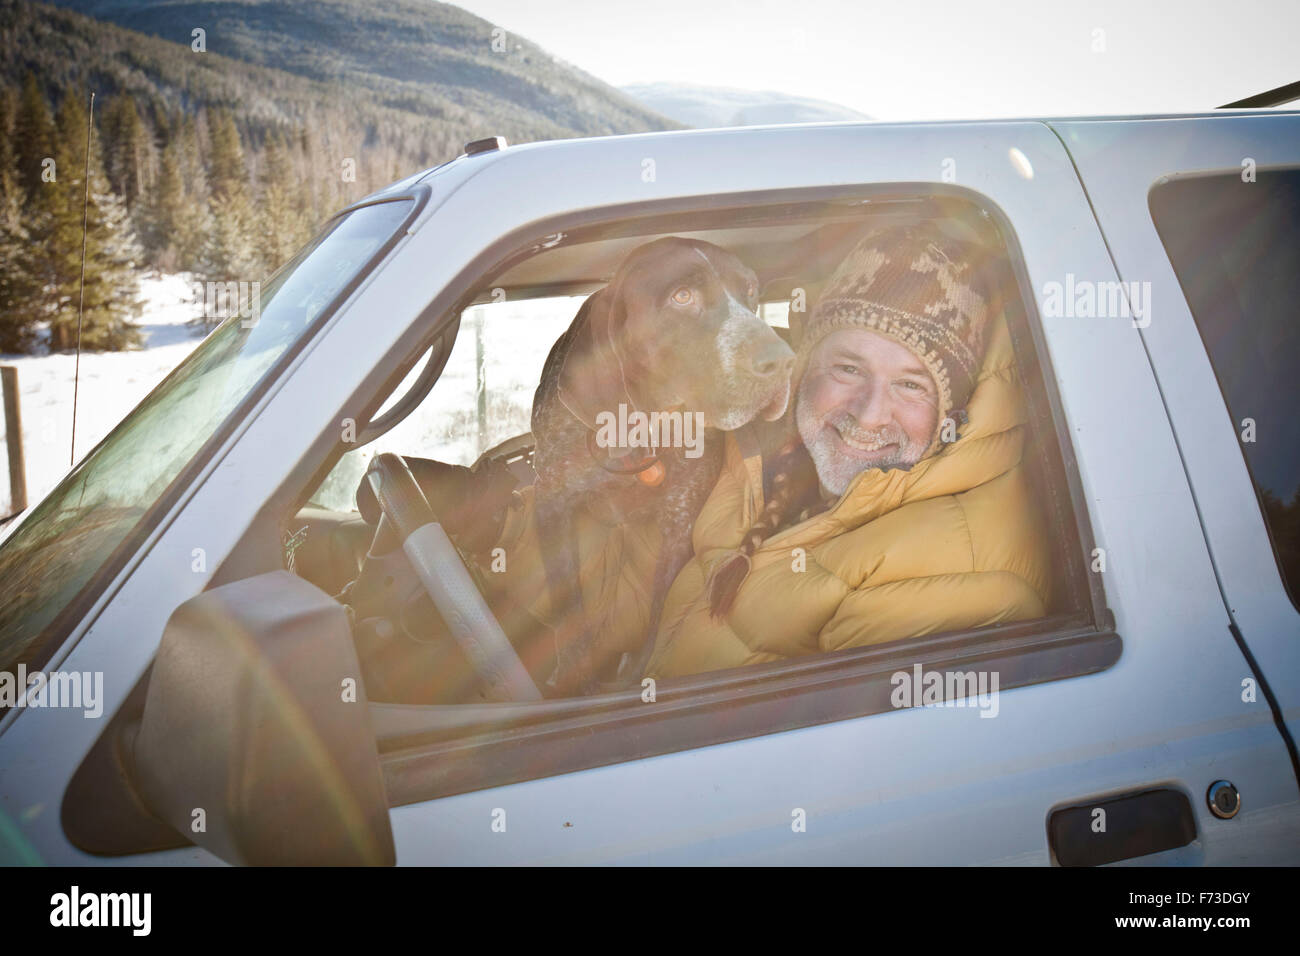 Portrait of a man and his dog in a truck. - Stock Image